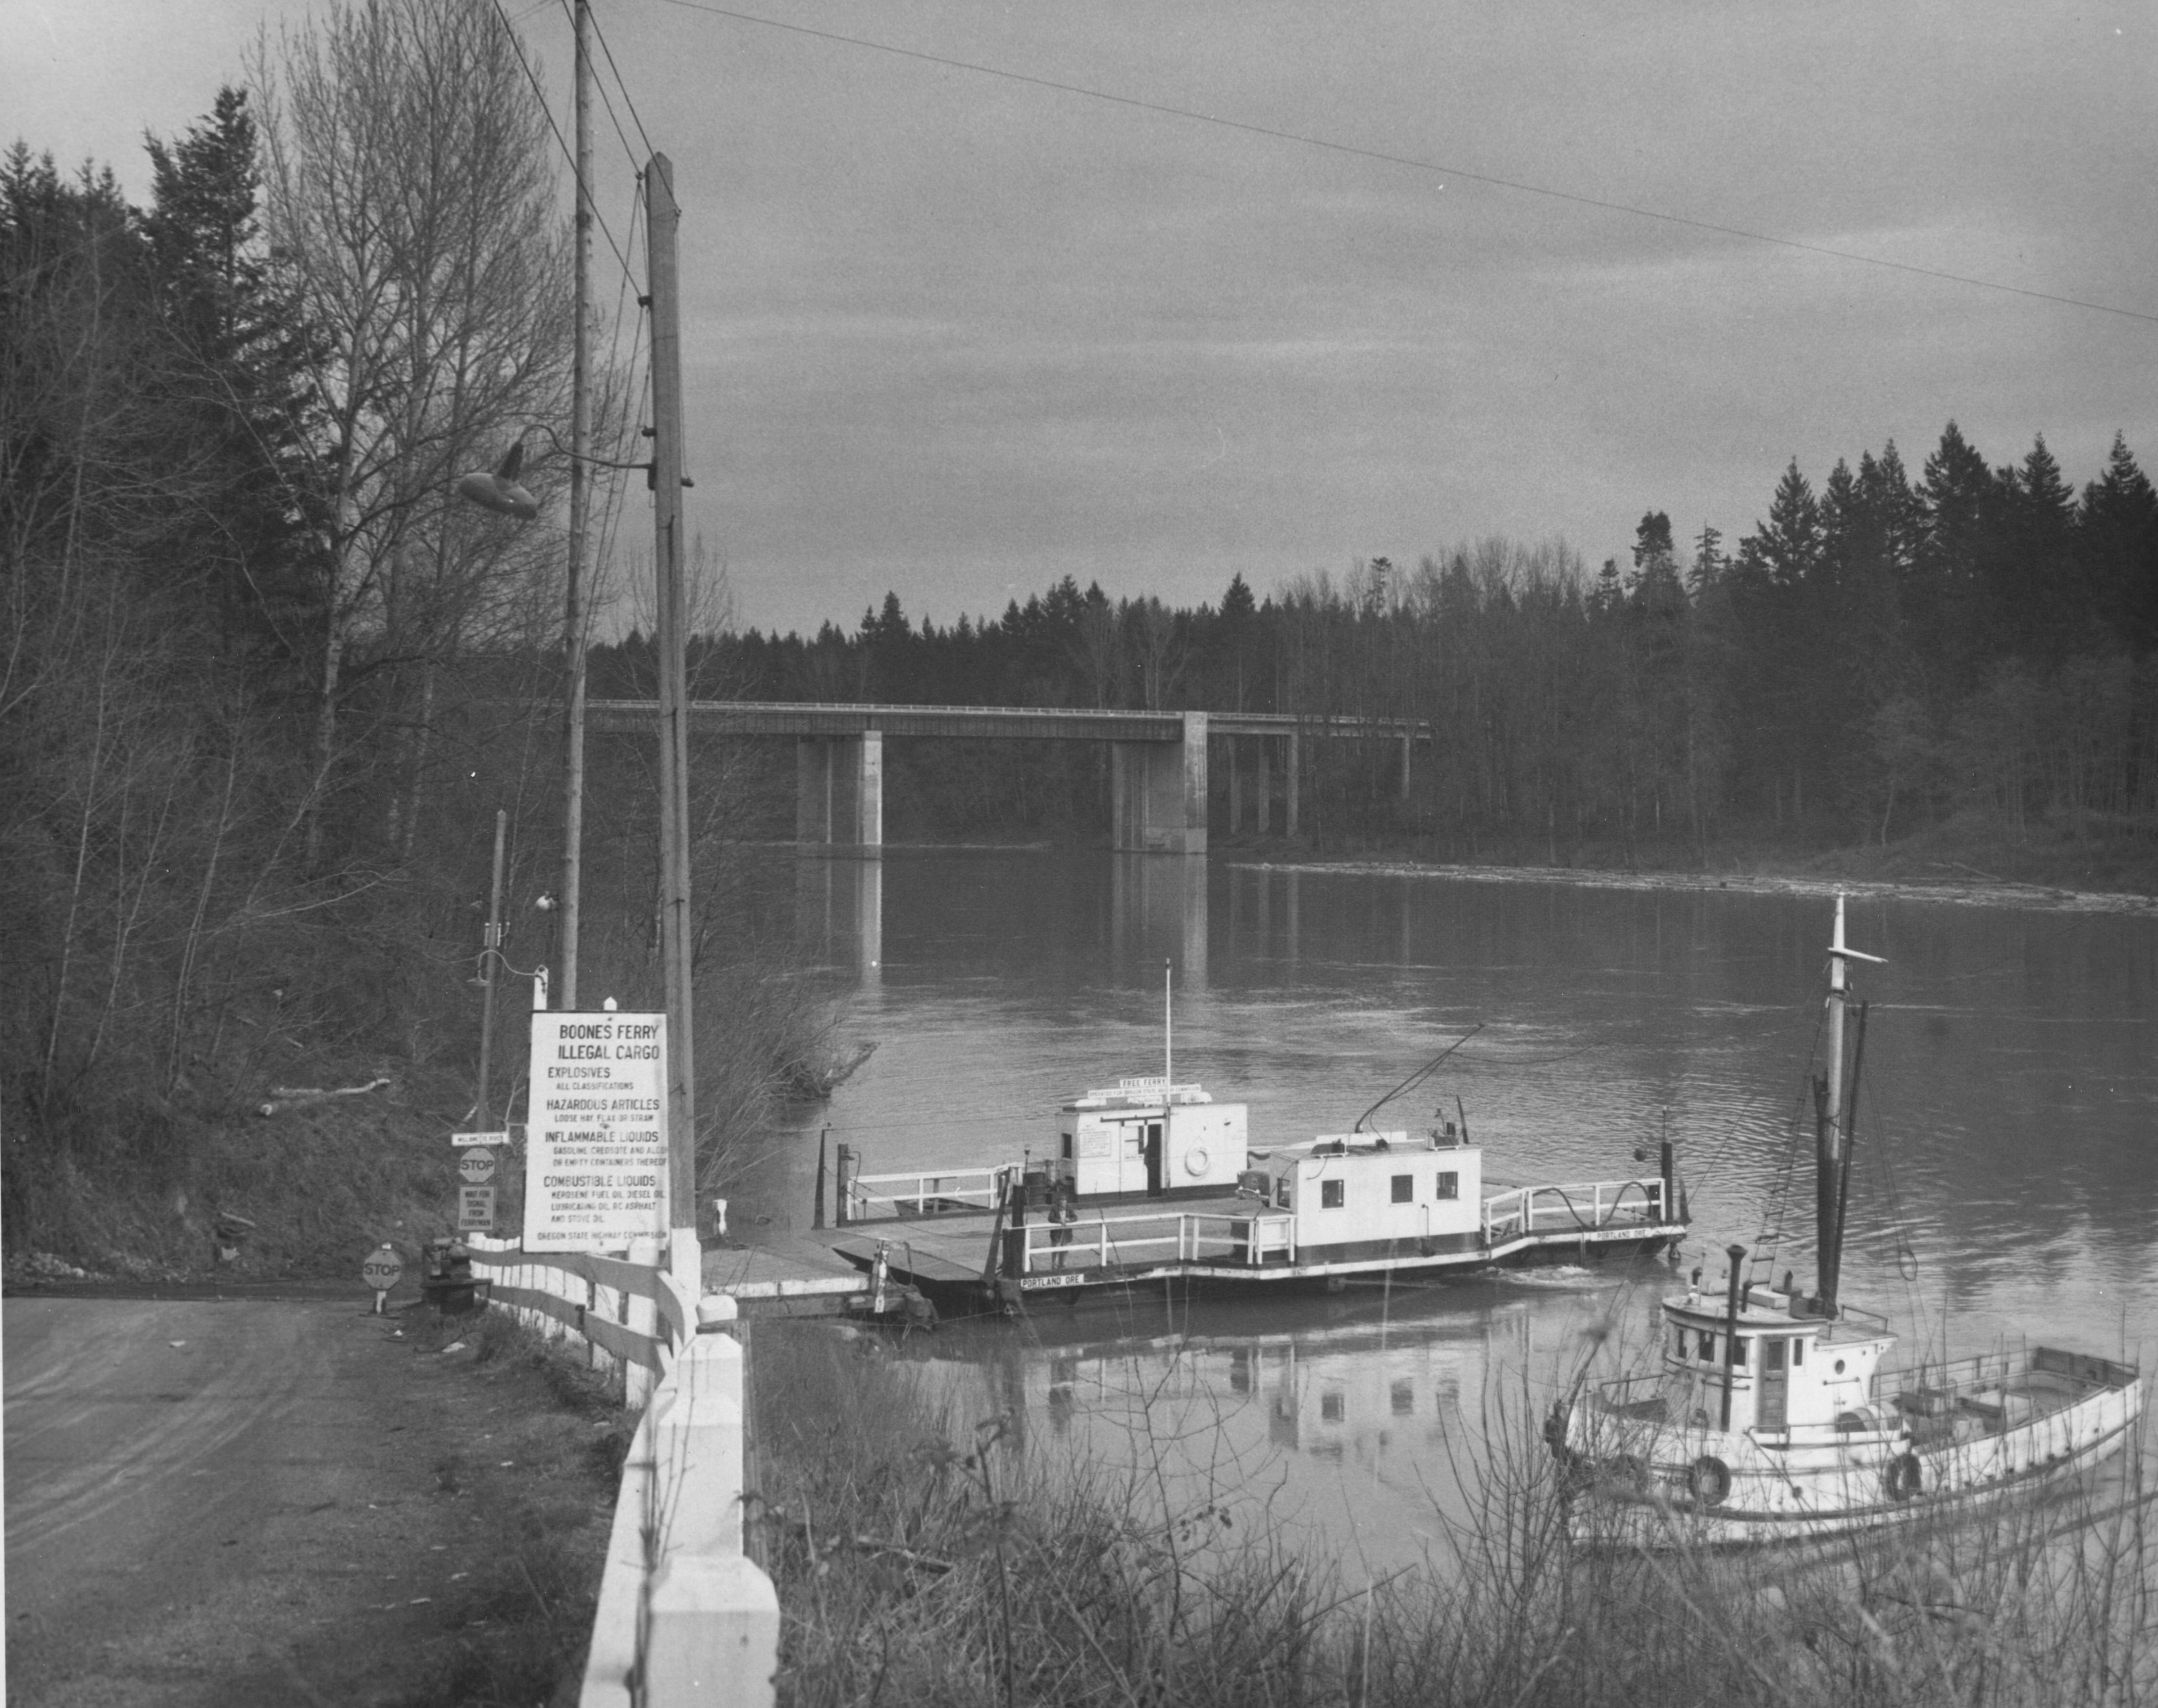 Boone's Ferry on the Willamette River